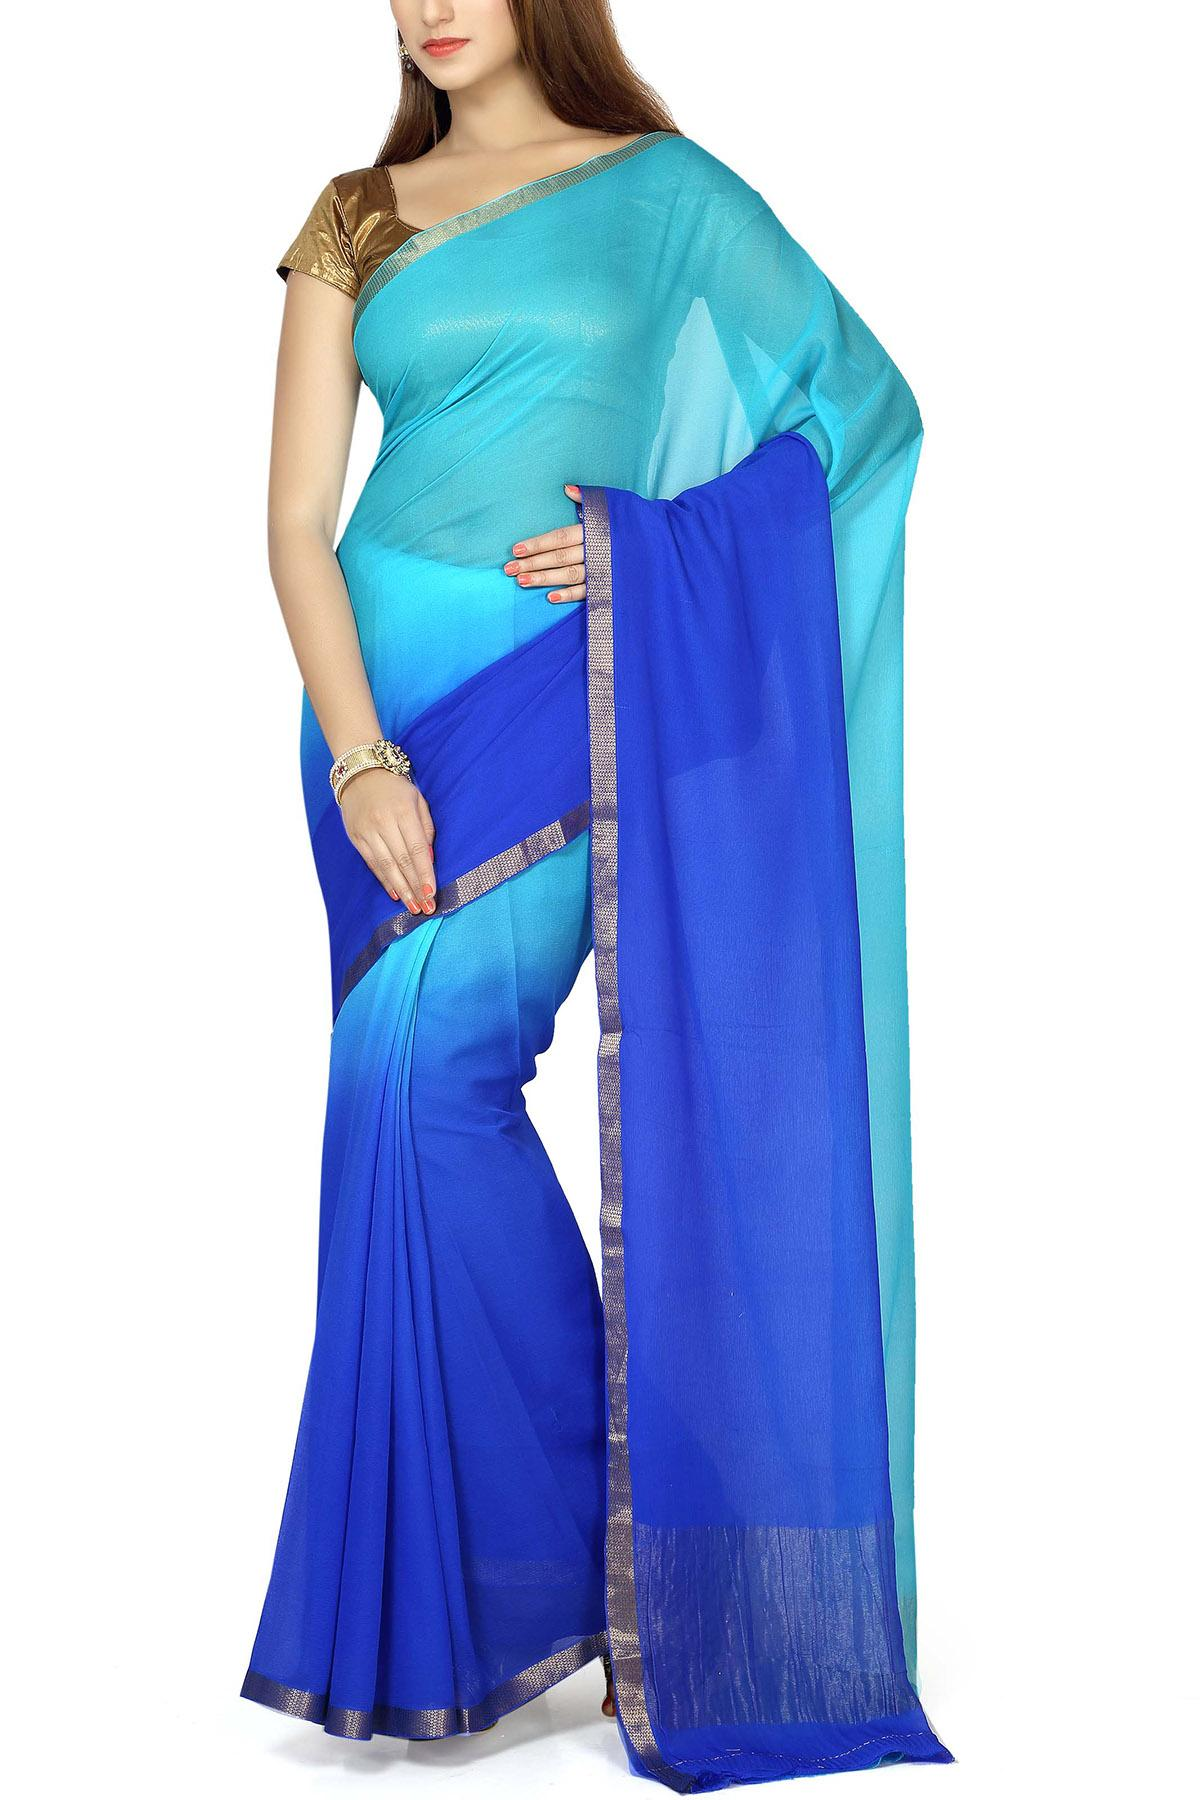 4f5f0c7018e70 Turquoise   Blue Shaded Pure Chiffon Zari Border Saree - Chiffon ...